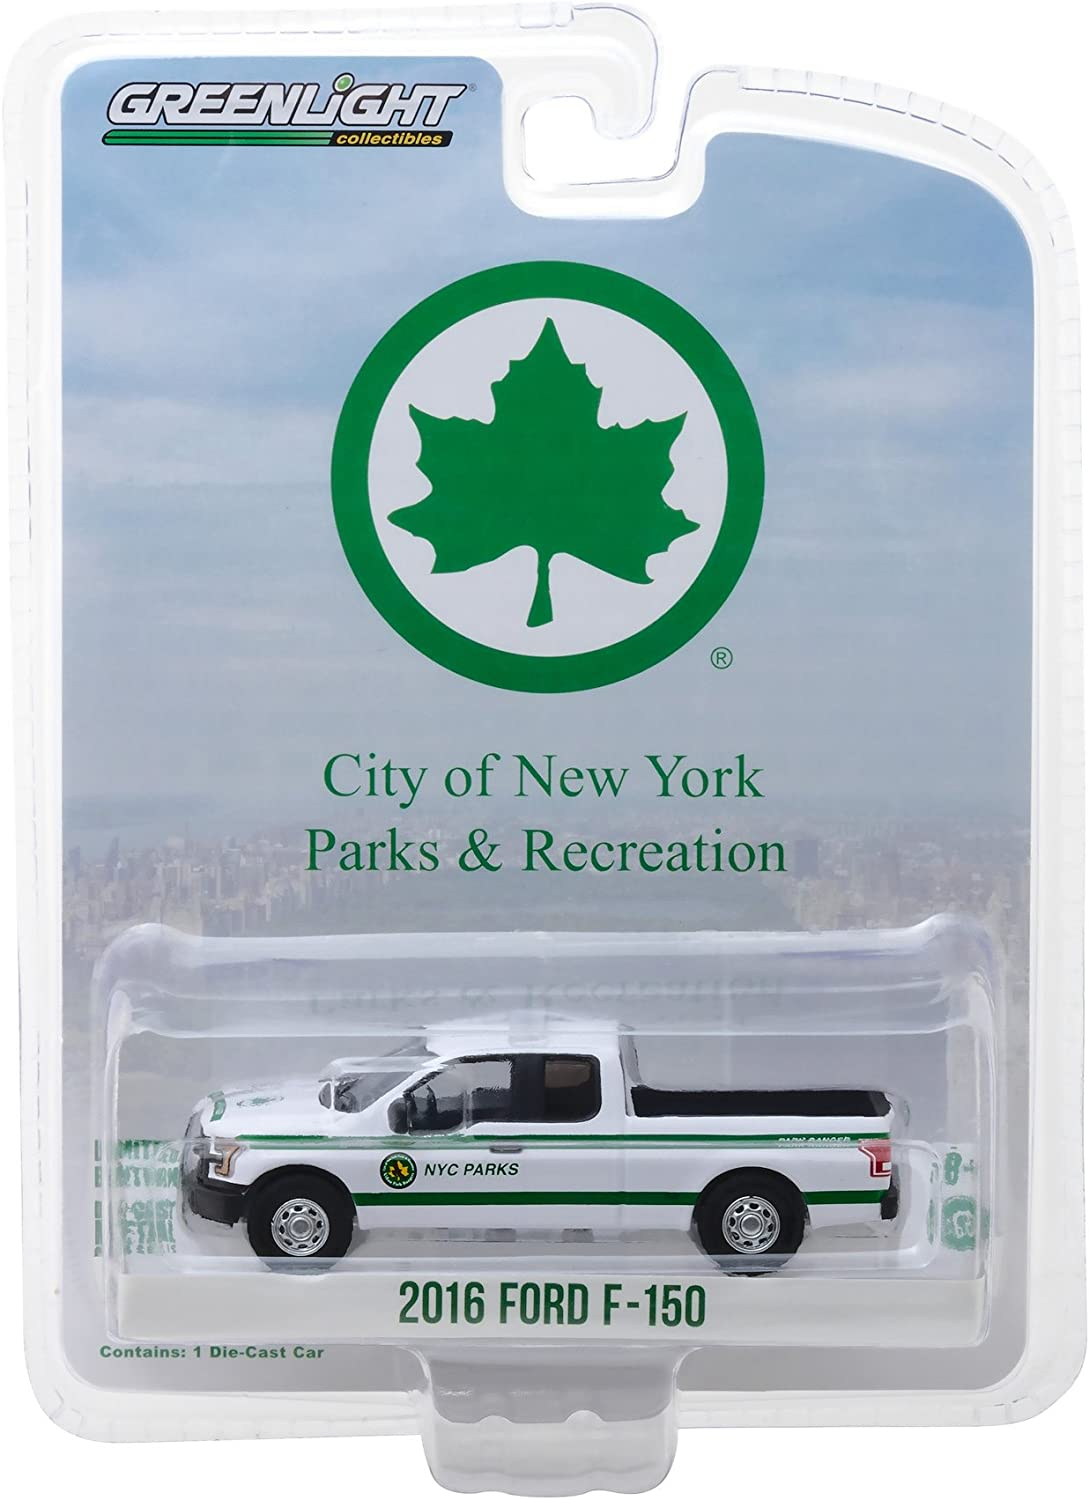 2016 Ford F-150 Pickup Truck White New York City Department of Parks and Recreation Blue Collar Collection Series 4 1/64 Diecast Model Car by Greenlight 35100 E